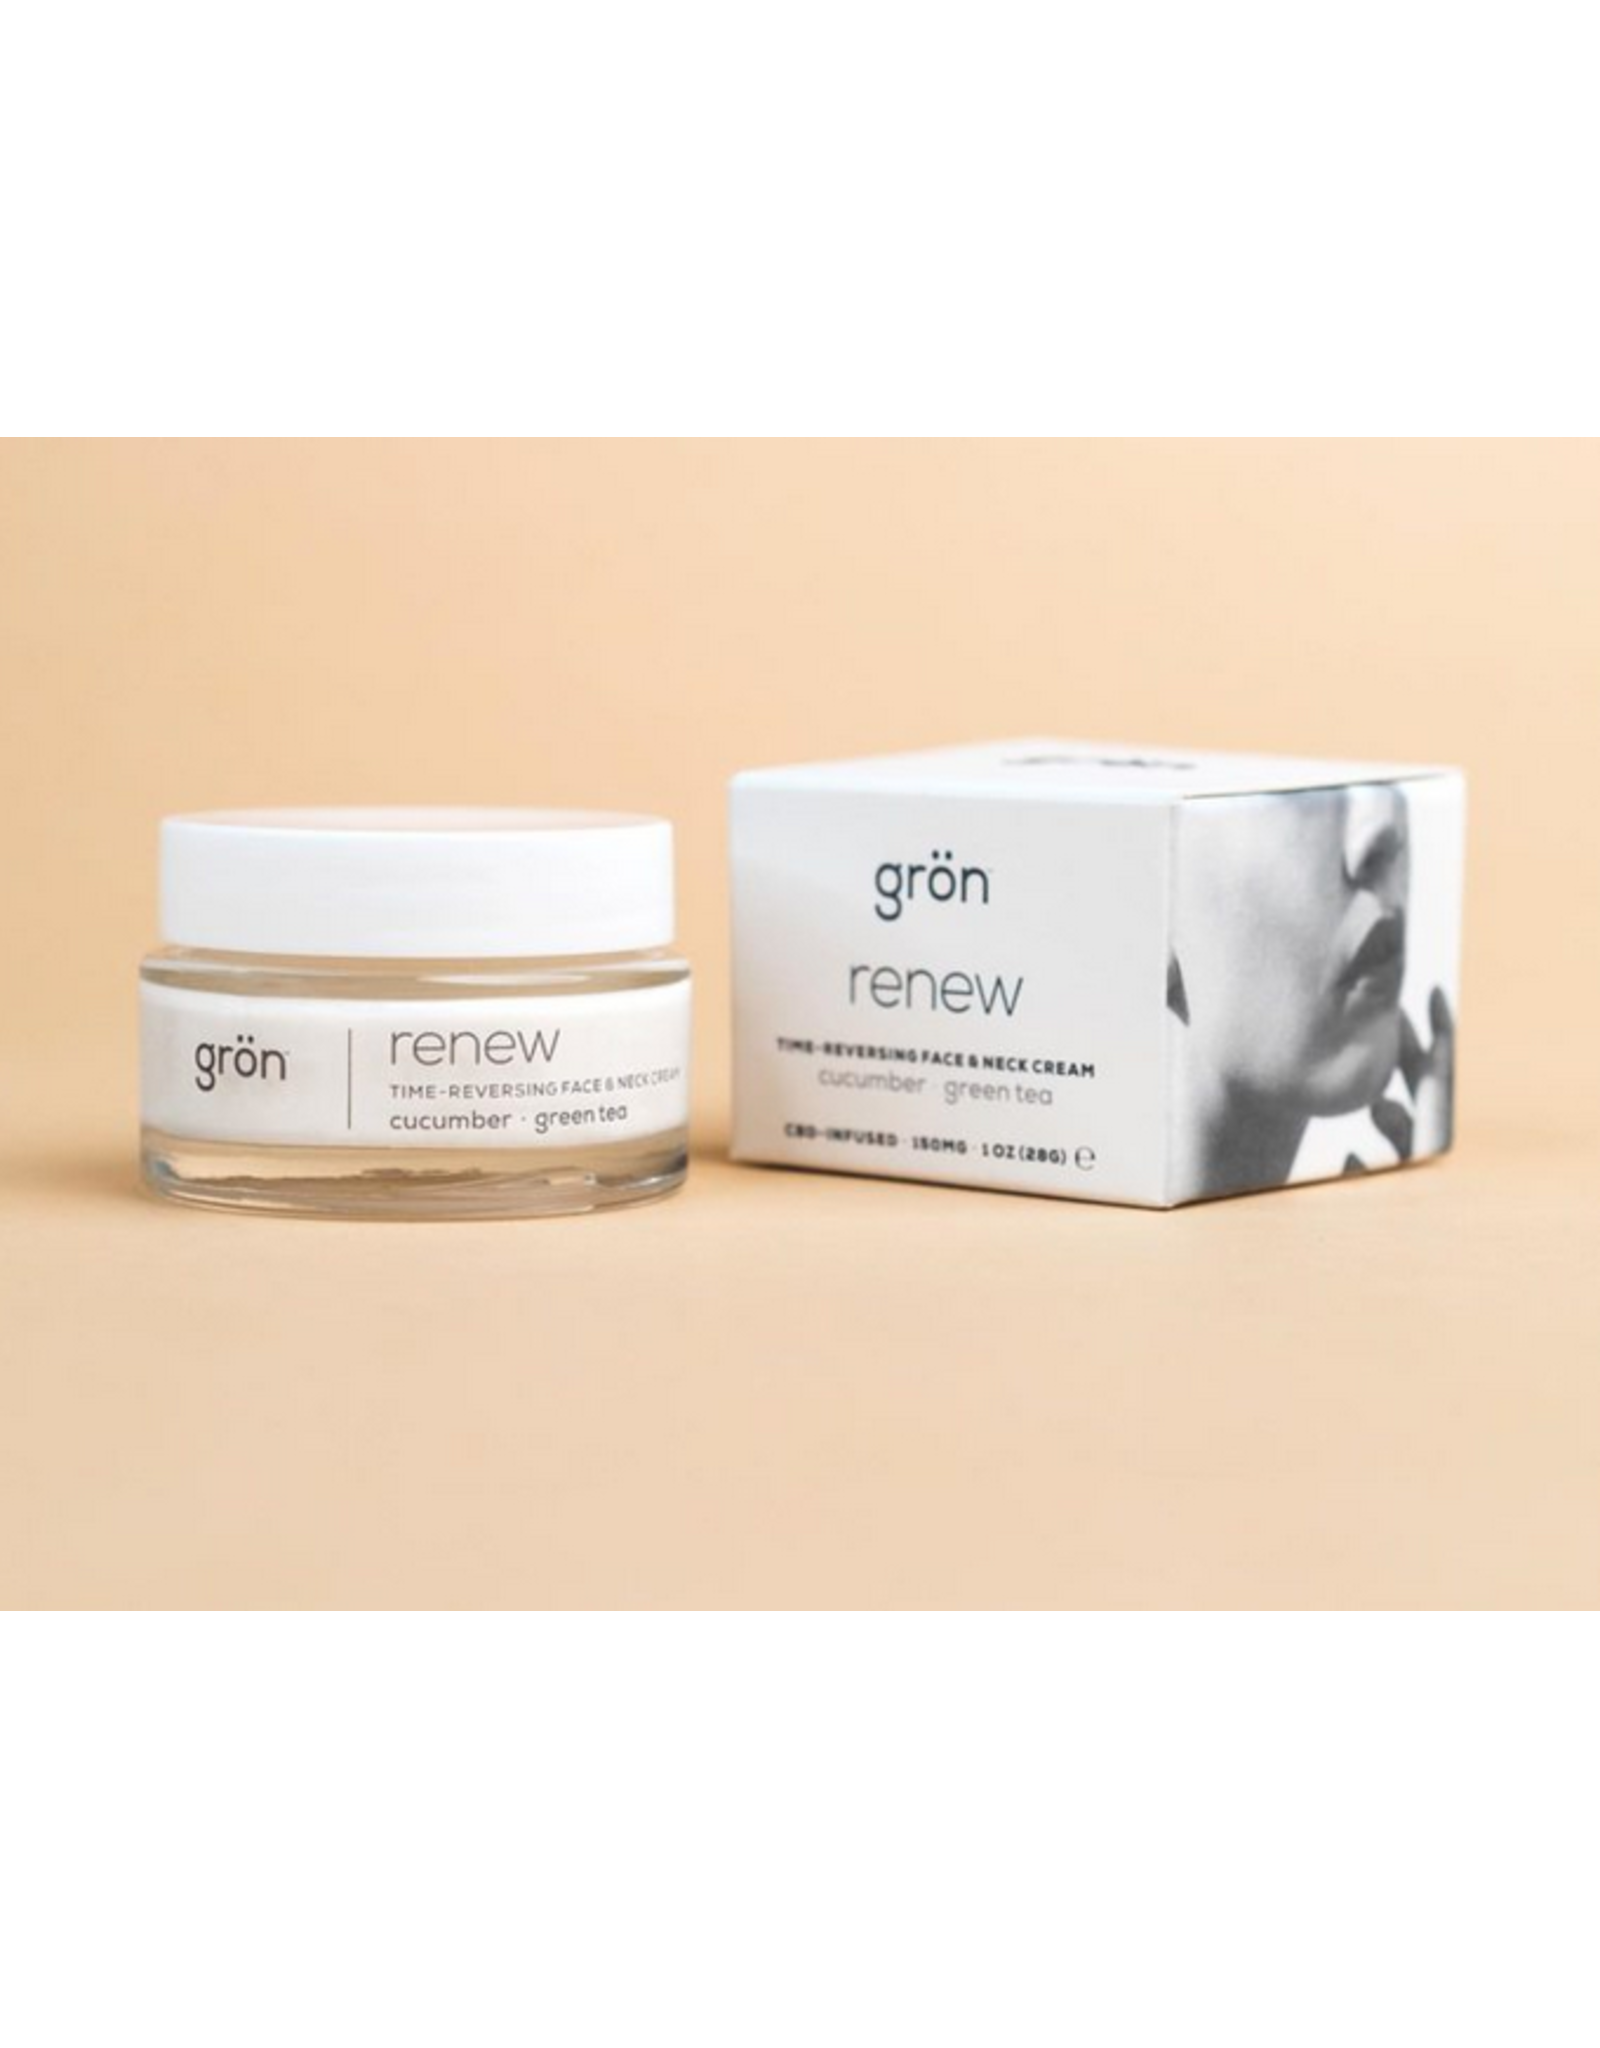 Gron Gron renew neck and face cream150mg